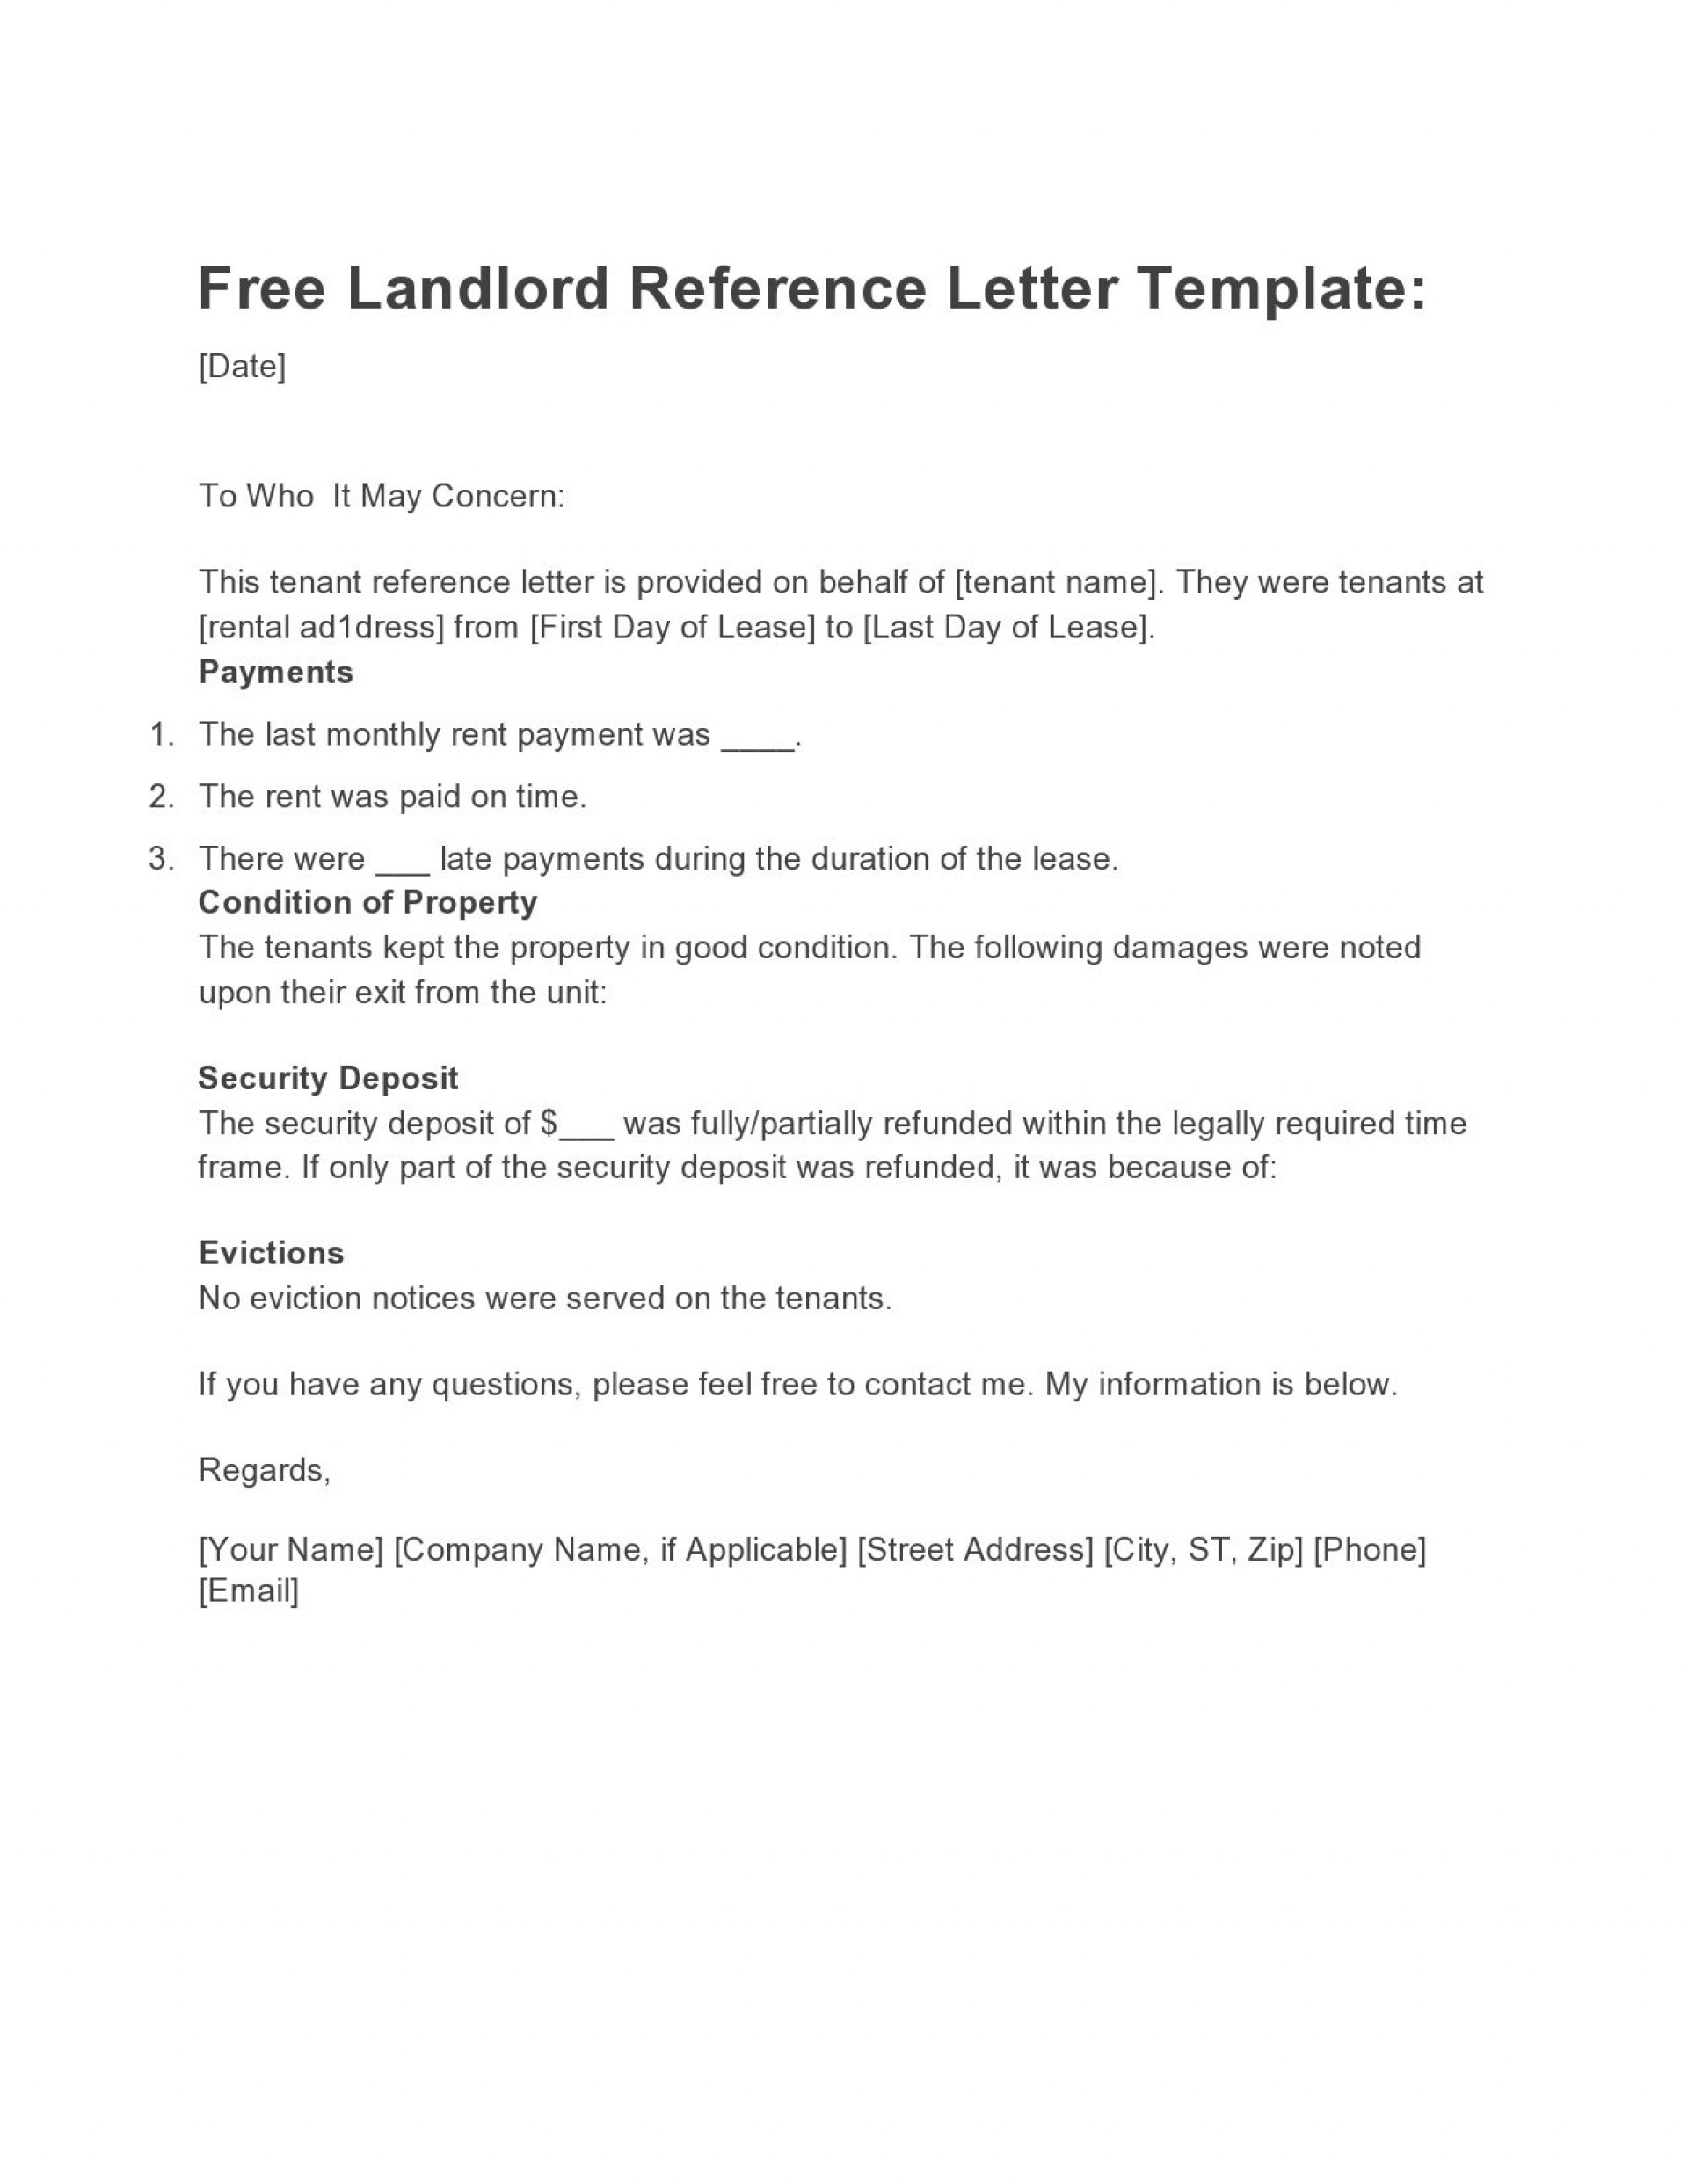 007 Astounding Free Reference Letter Template For Tenant Photo 1920